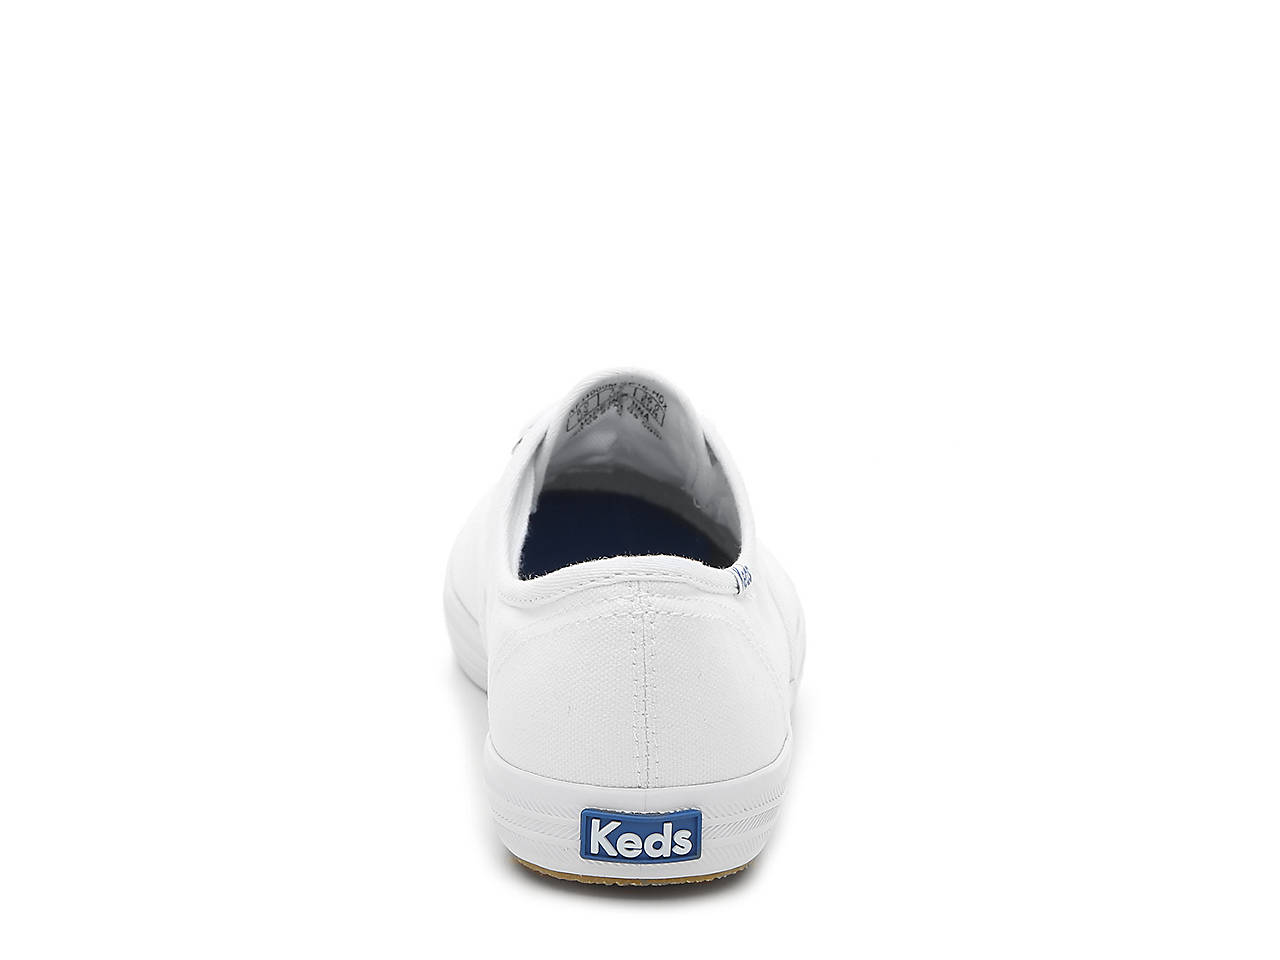 37f6dfbb0e8927 Keds Champion Sneaker - Women s Women s Shoes